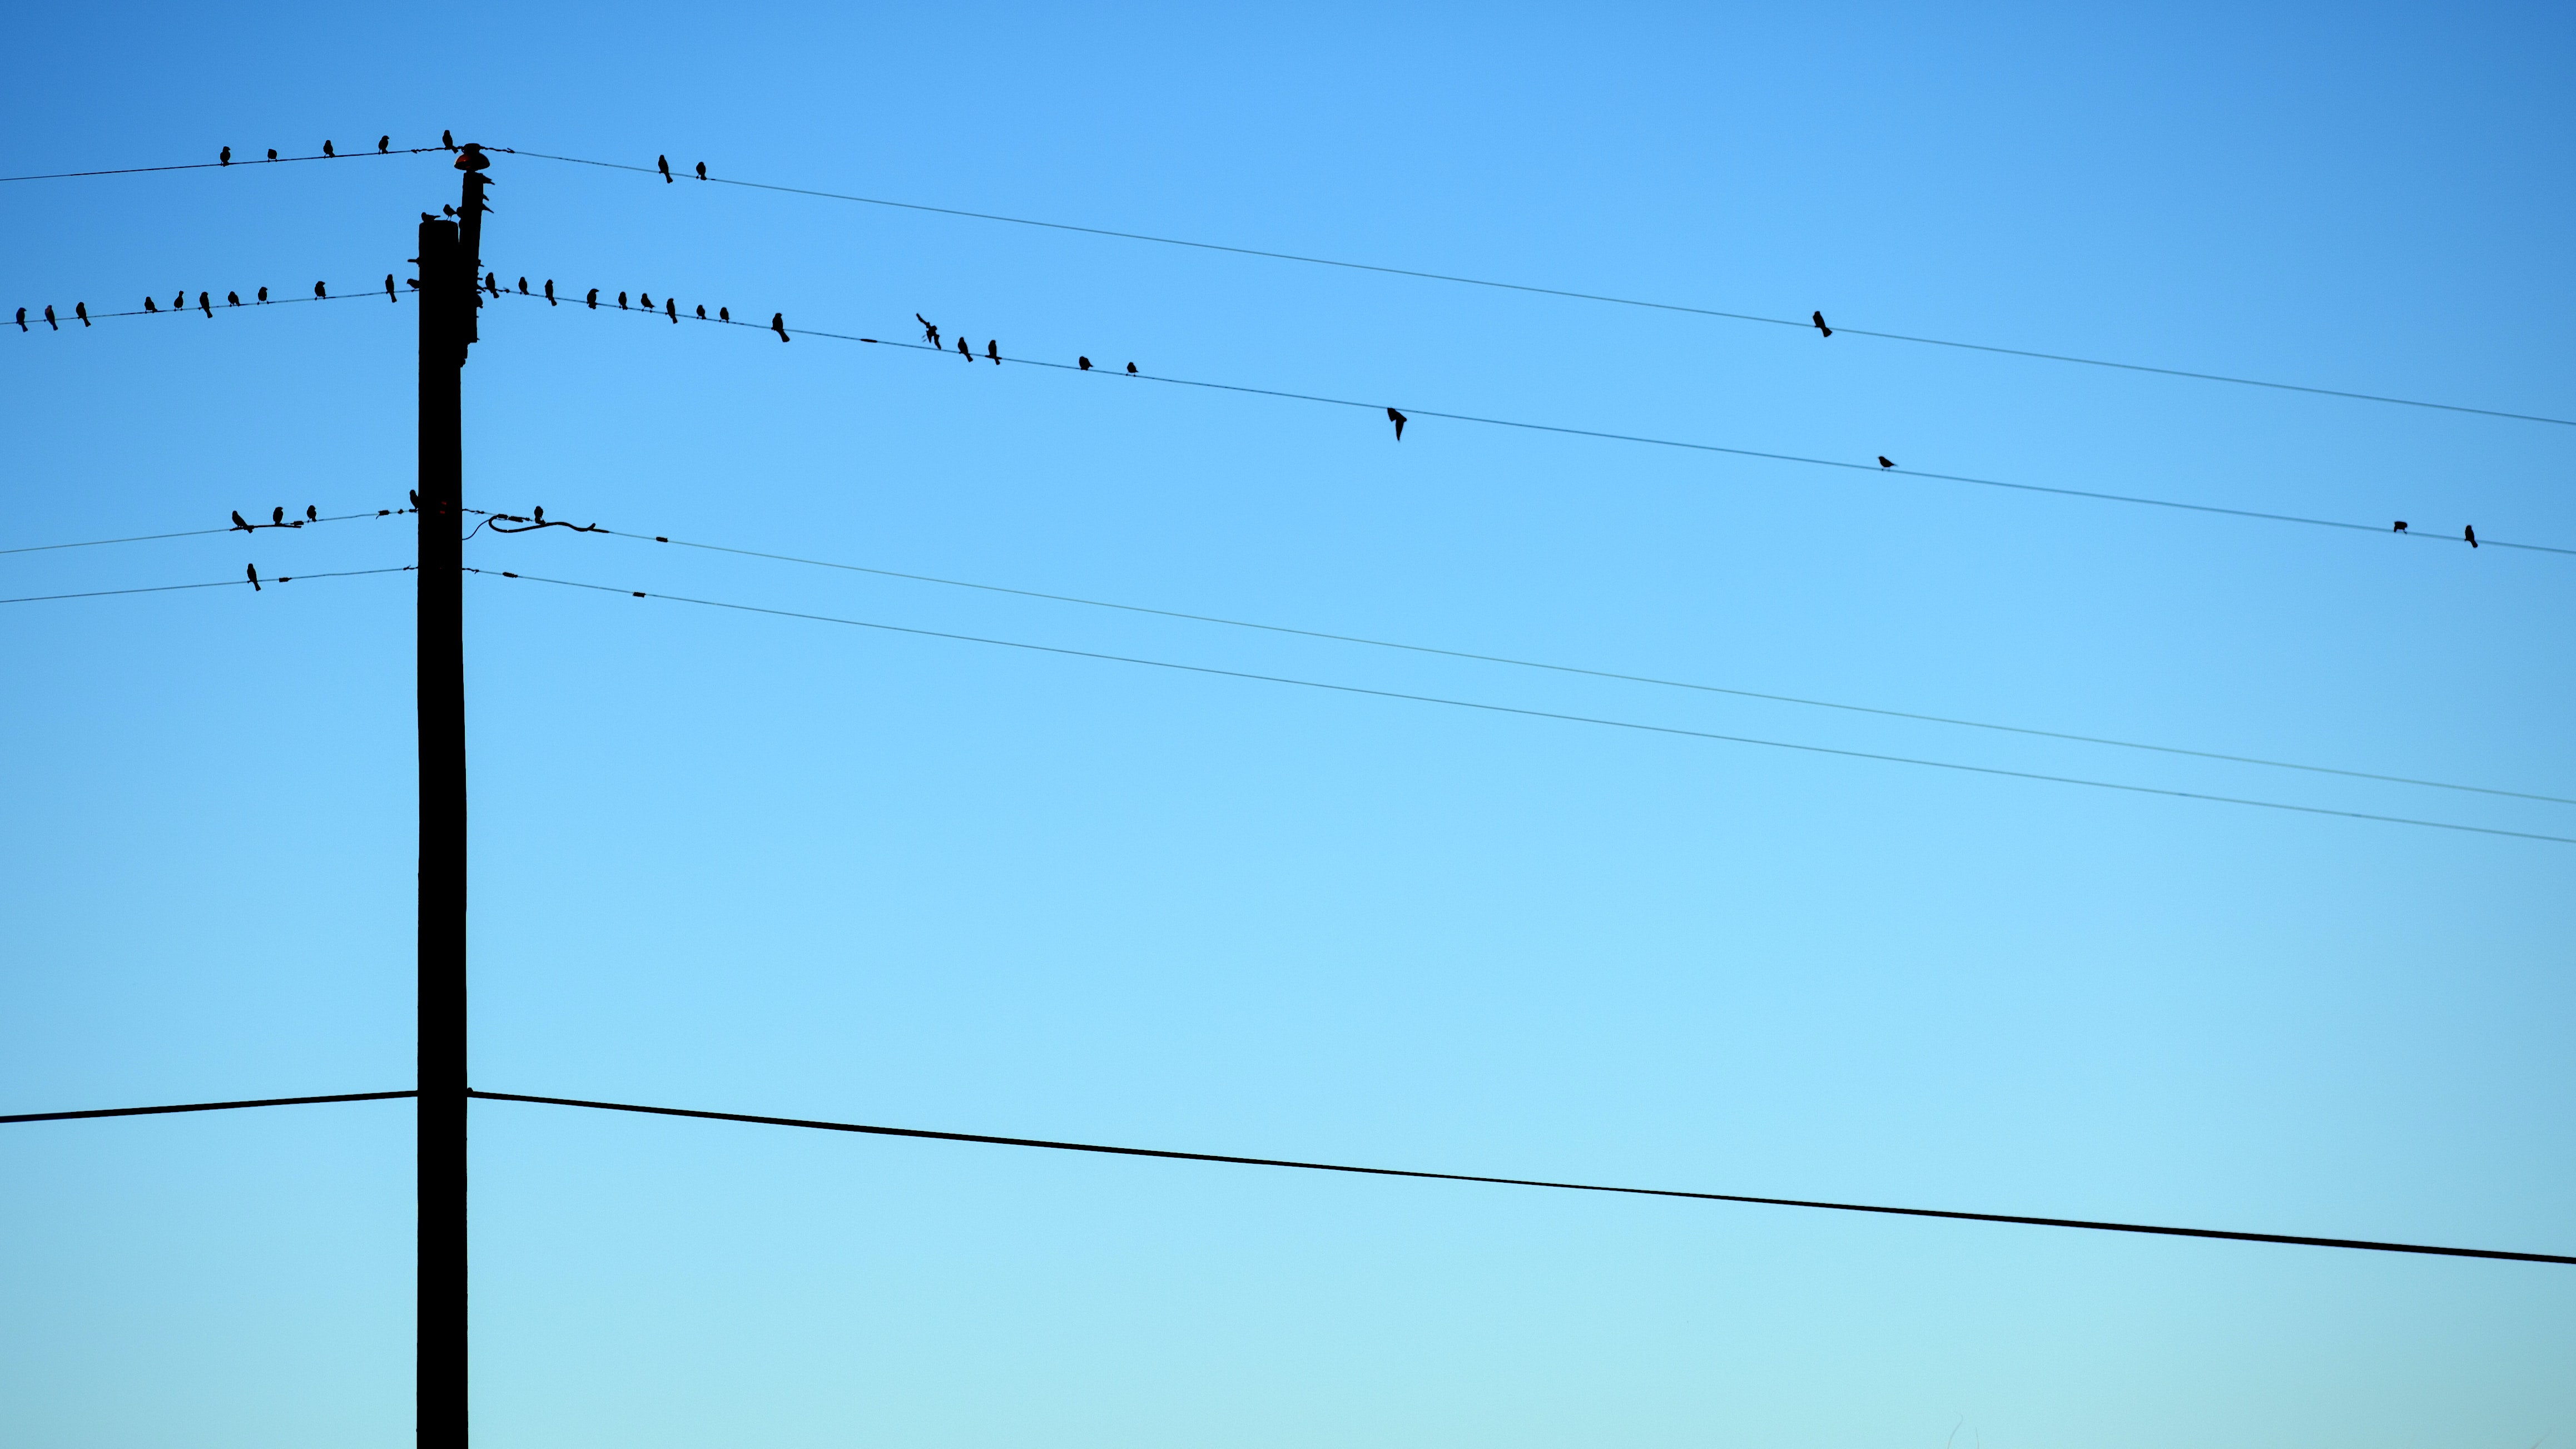 Birds sit on telephone wires against a blue sky